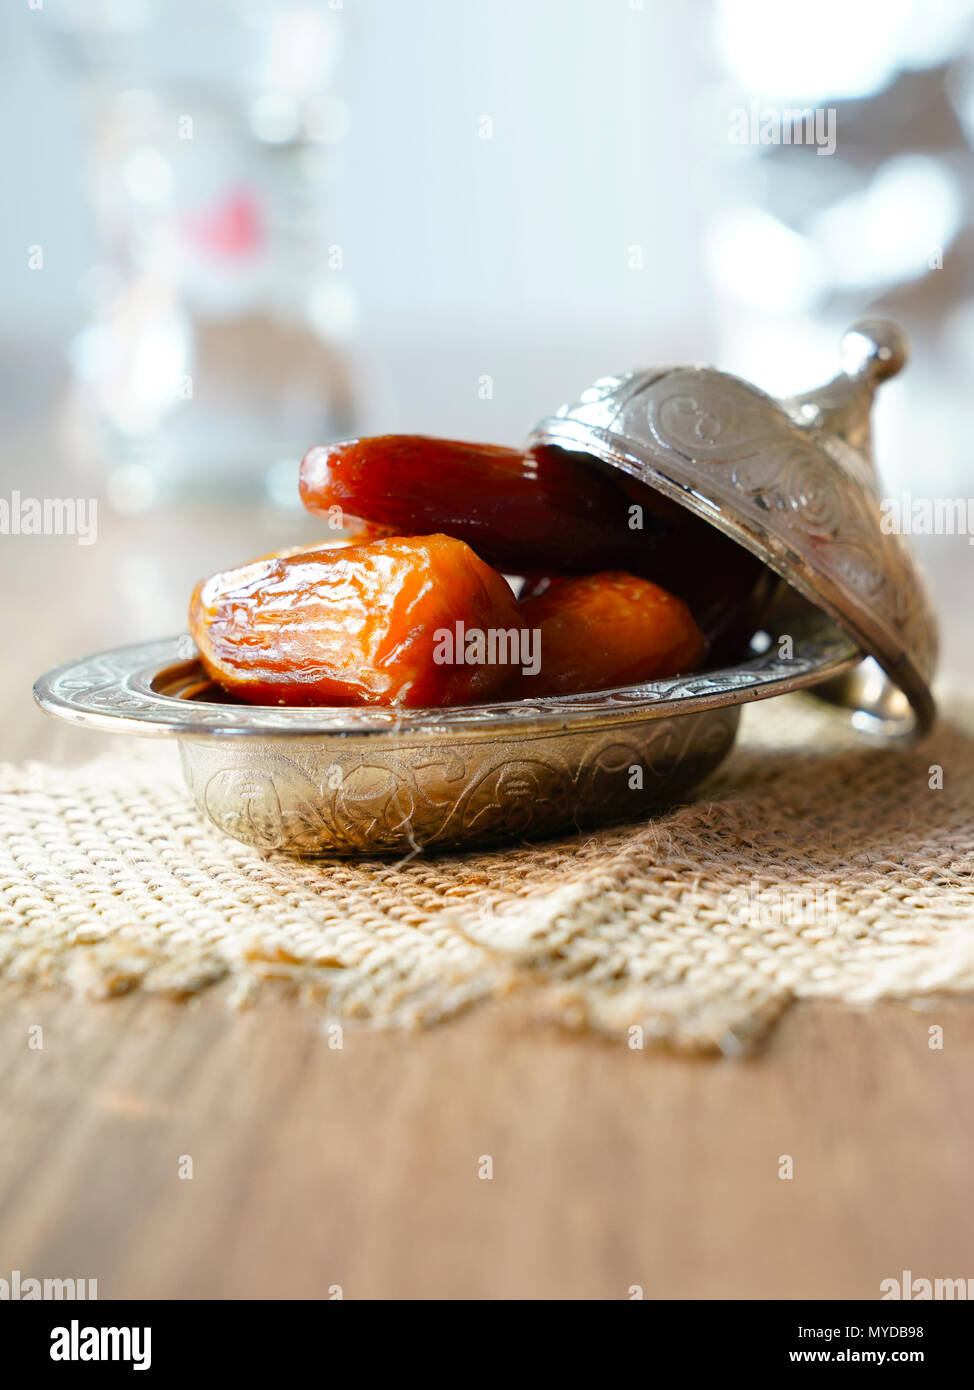 Fresh fruit dates in a silver metal bowl on a piece of sackcloth on walnut wooden table - Stock Image